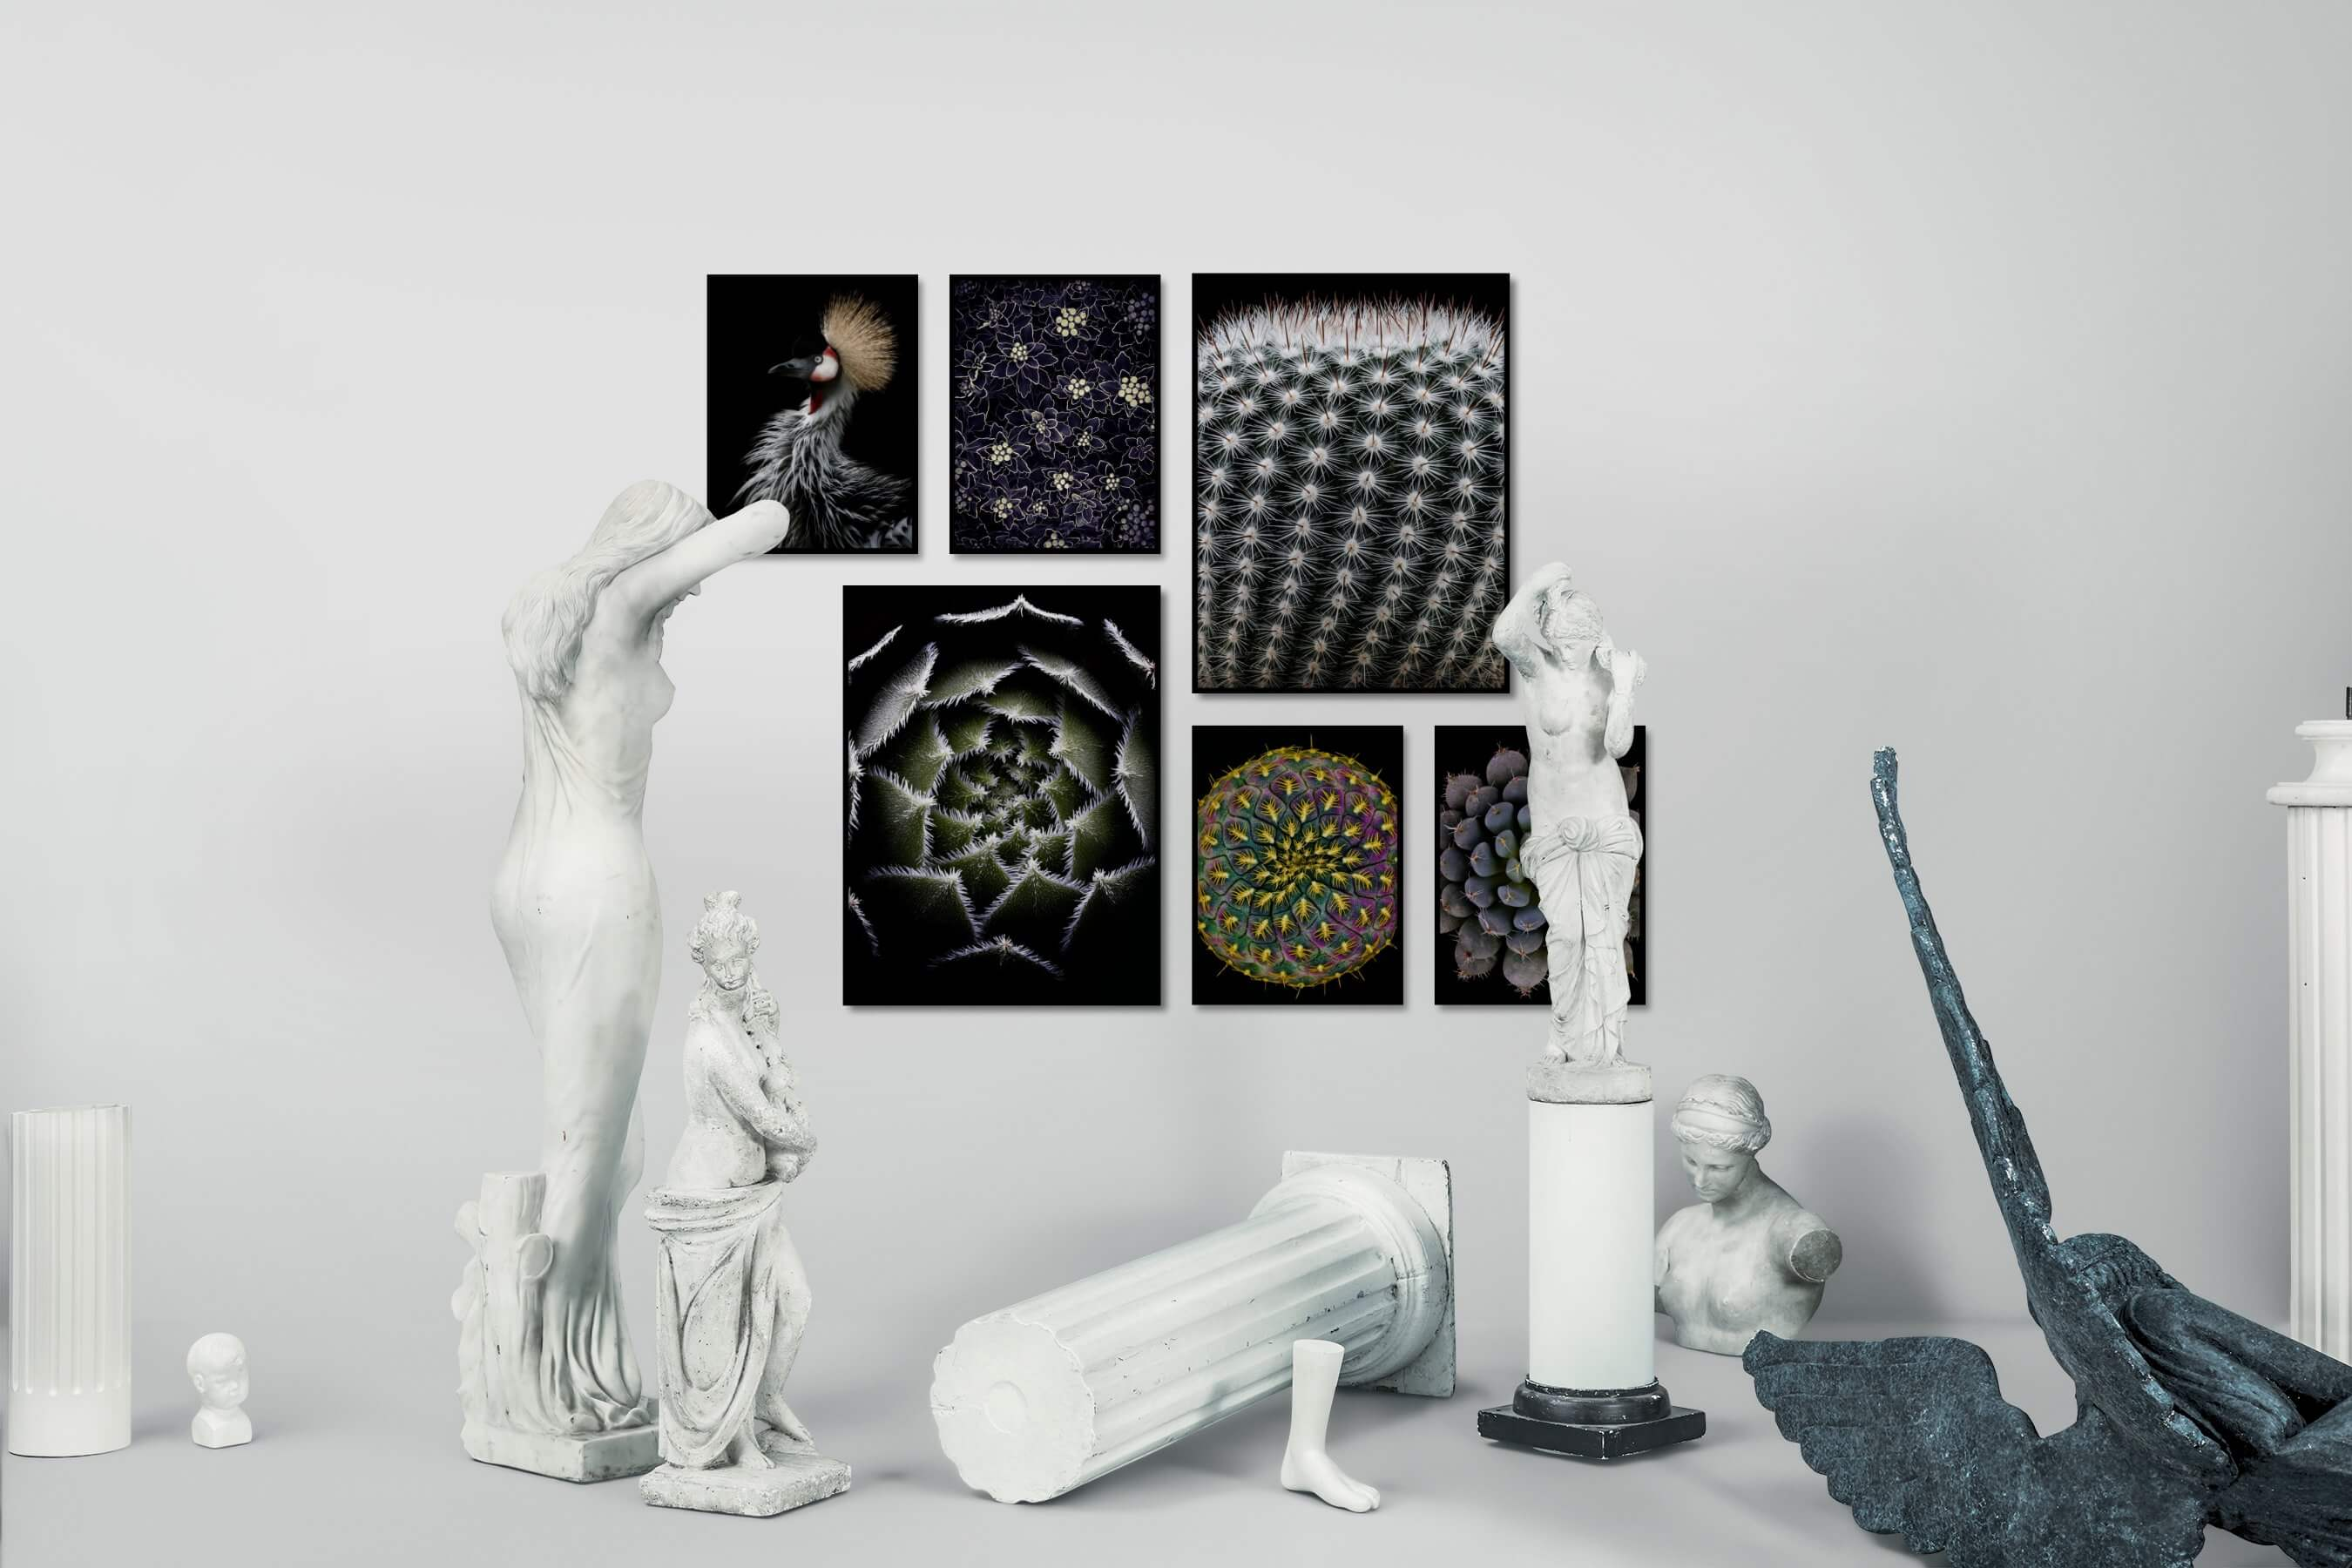 Gallery wall idea with six framed pictures arranged on a wall depicting Dark Tones, For the Minimalist, Animals, For the Maximalist, Flowers & Plants, For the Moderate, and Colorful